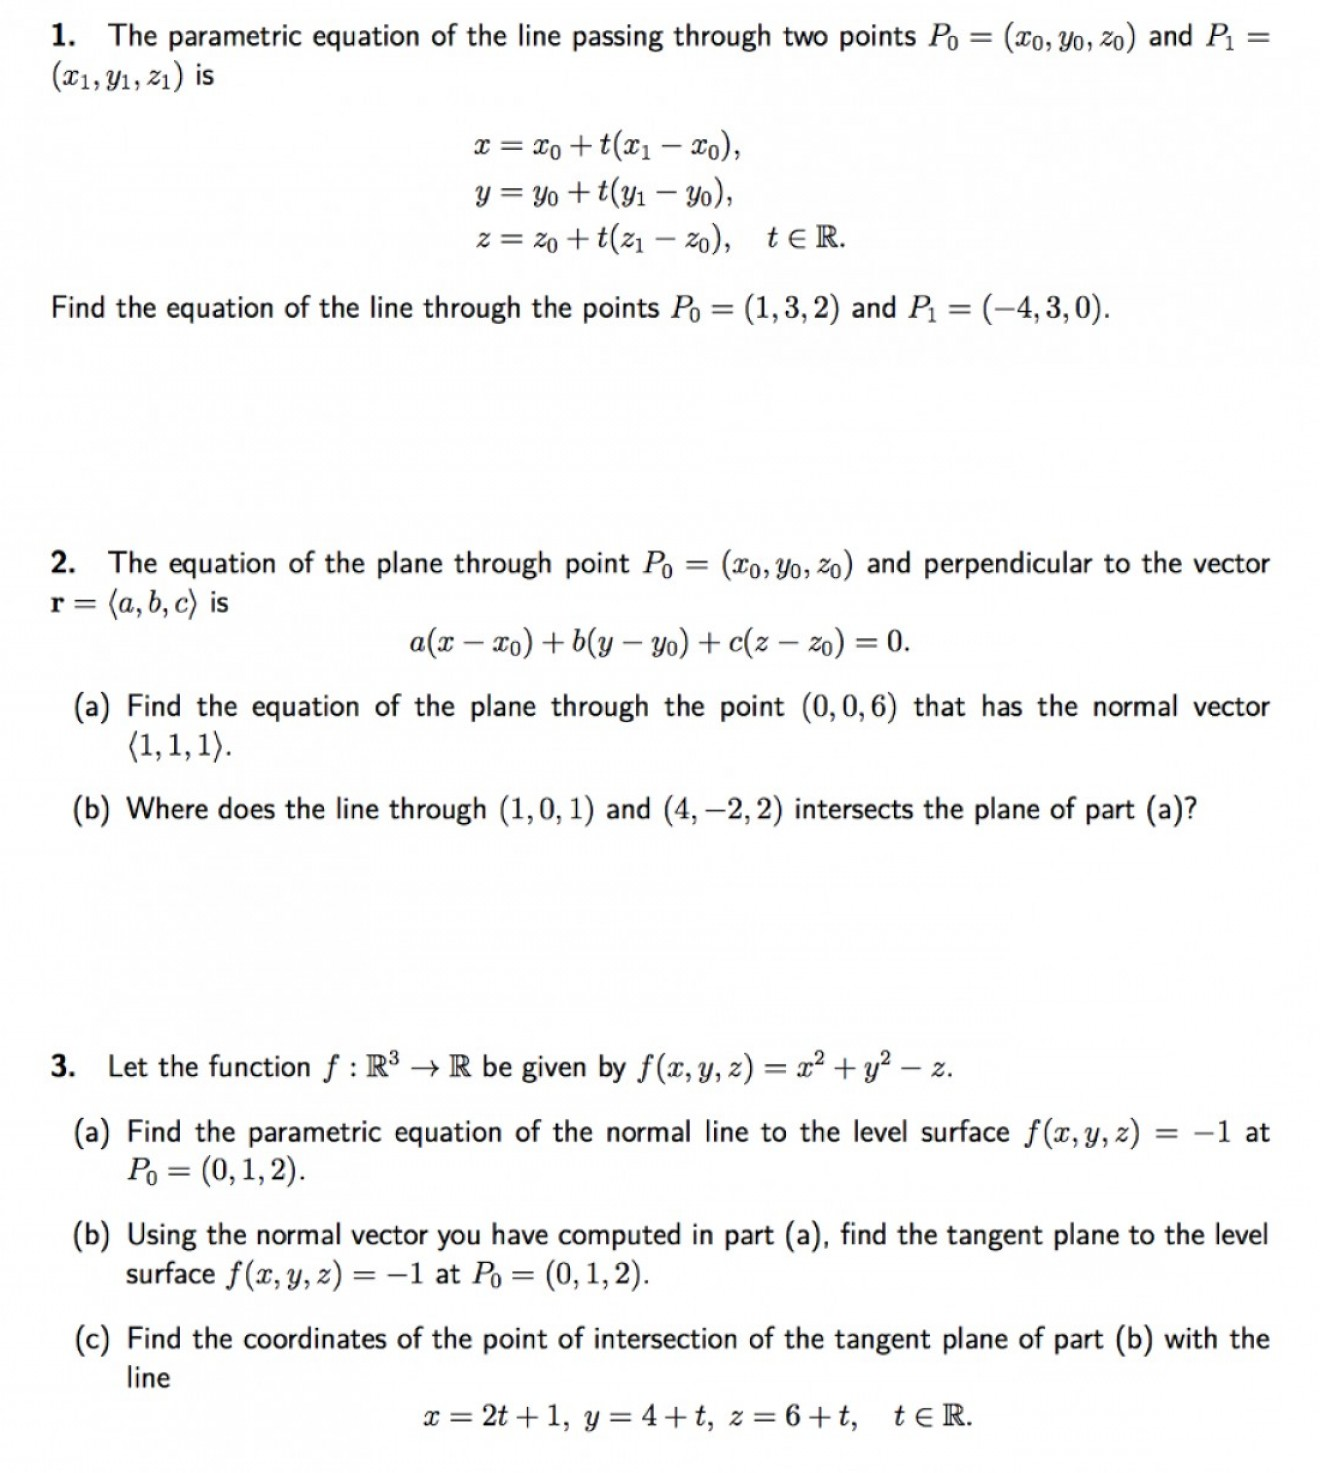 A Line Of Vector Equation R: Vector Parametric Equation Through Two Points